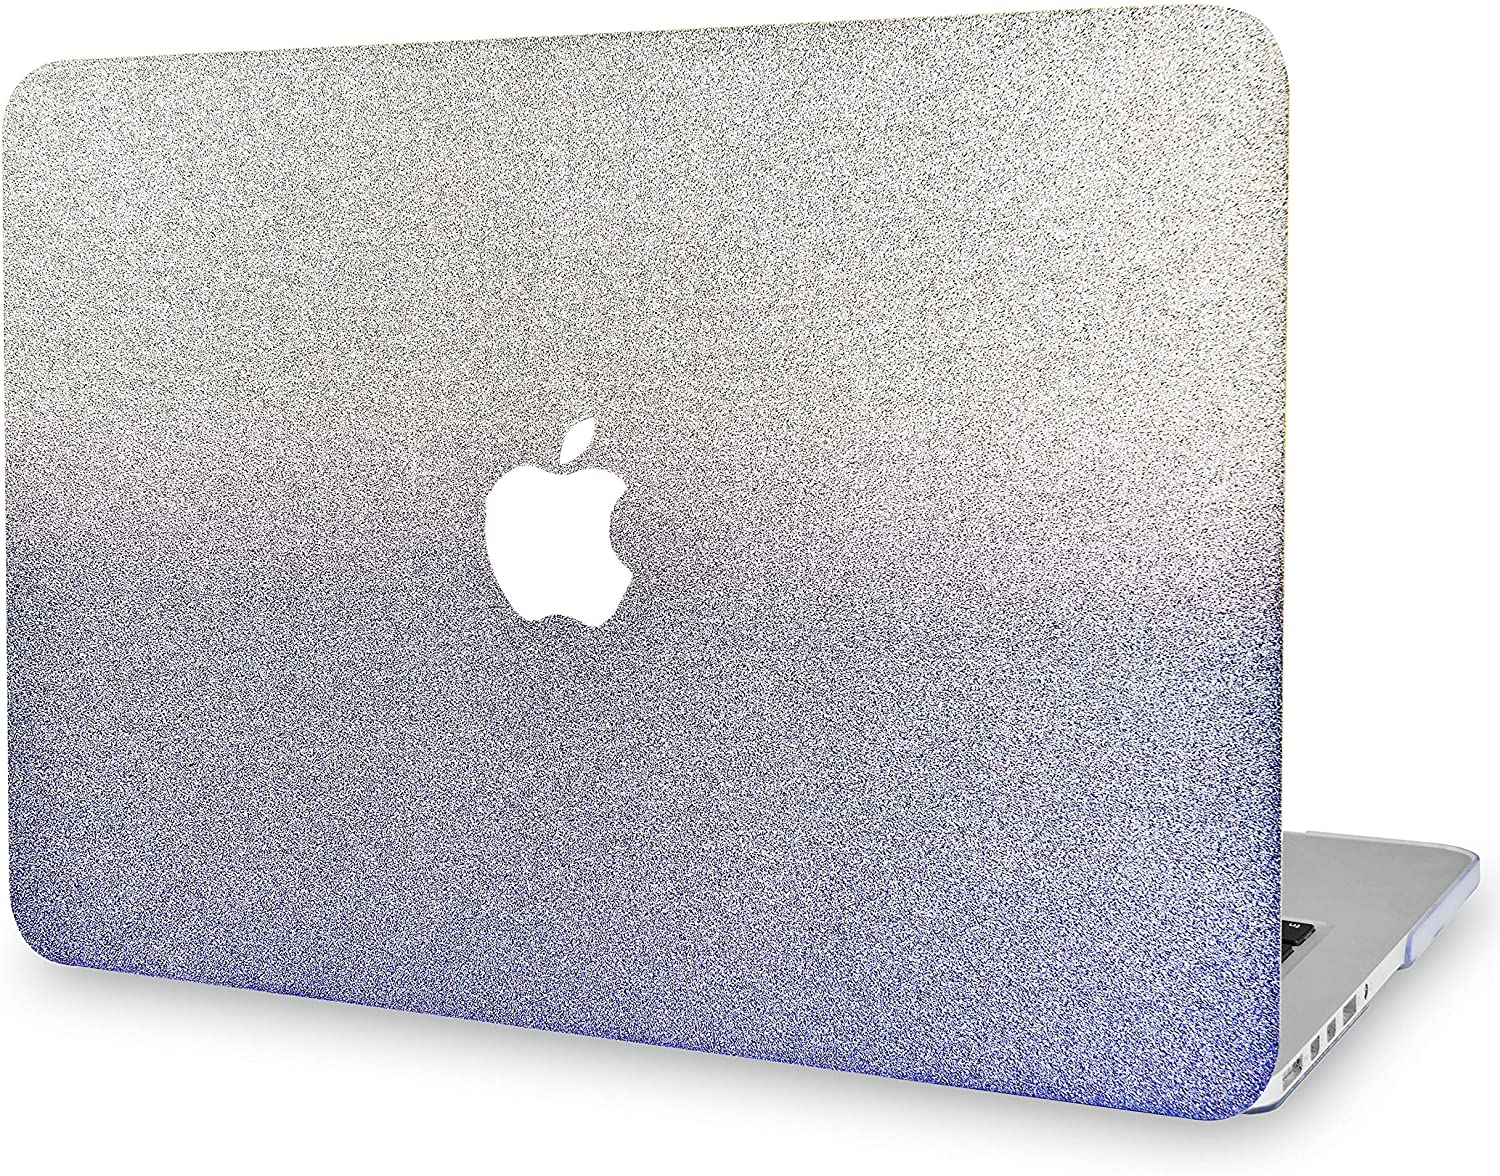 KECC Laptop Case for MacBook Air 13 Plastic Case Hard Shell Cover A1466/A1369 (Silver Blue Sparkling)